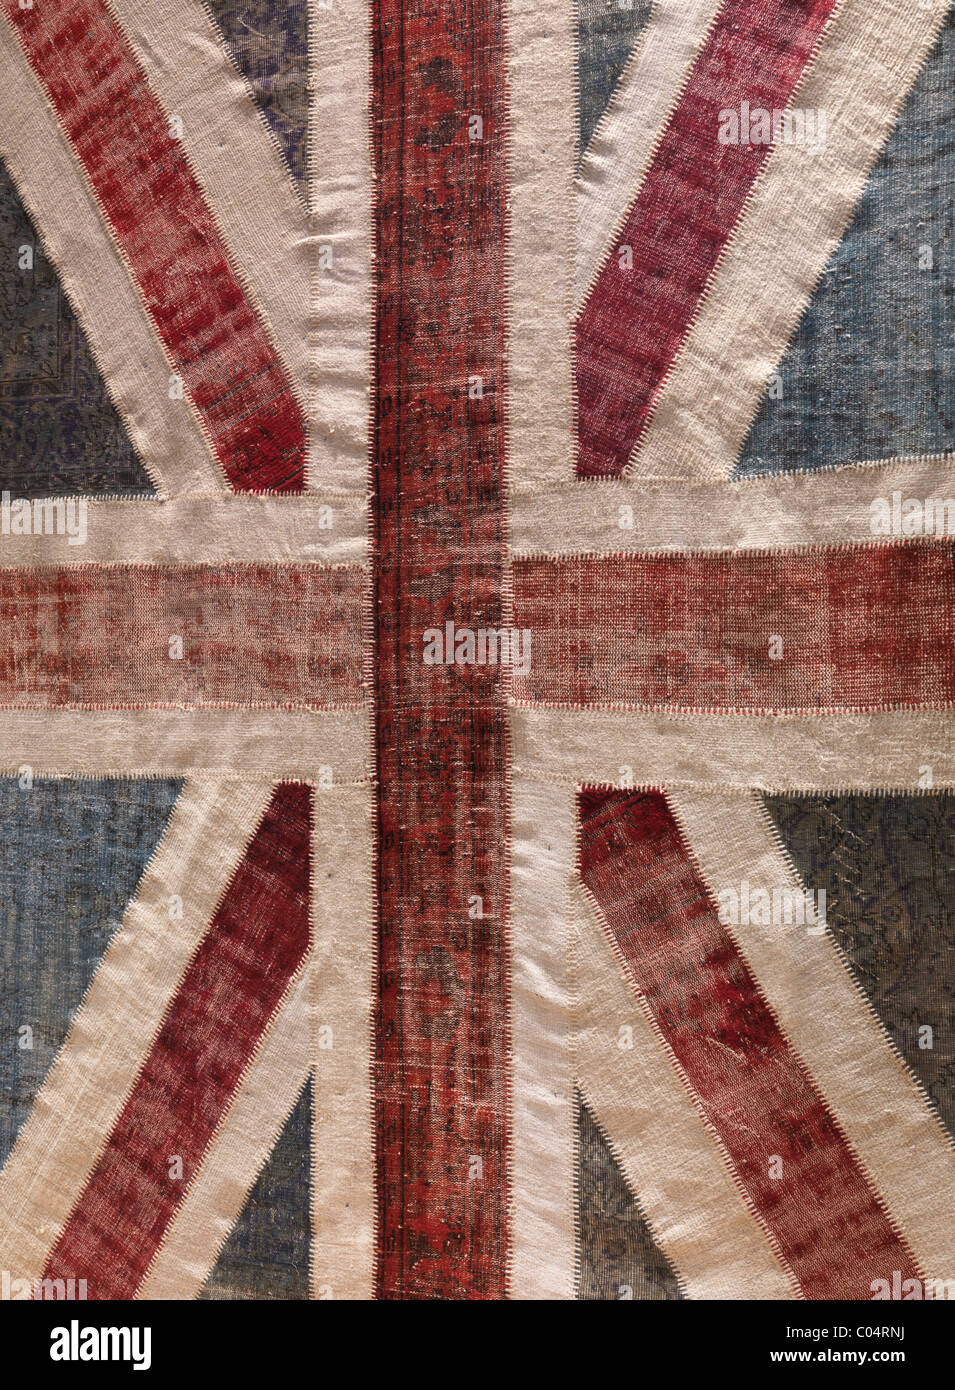 Carpet with Union Jack pattern made of colorful recycled vintage carpets - Stock Image